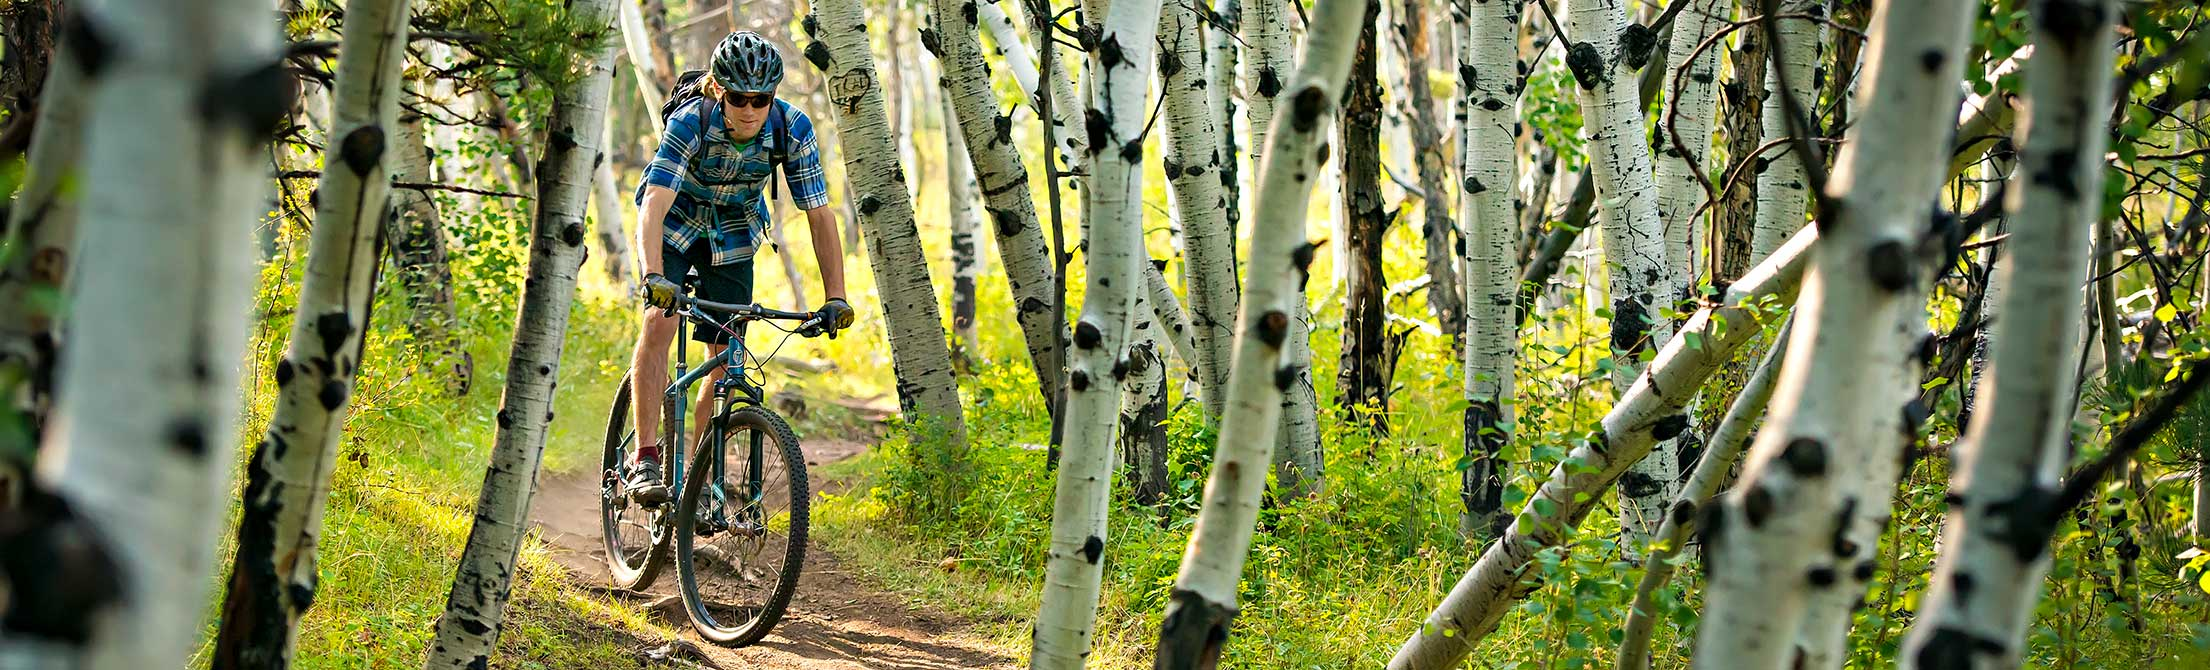 mountain biker in aspen trees